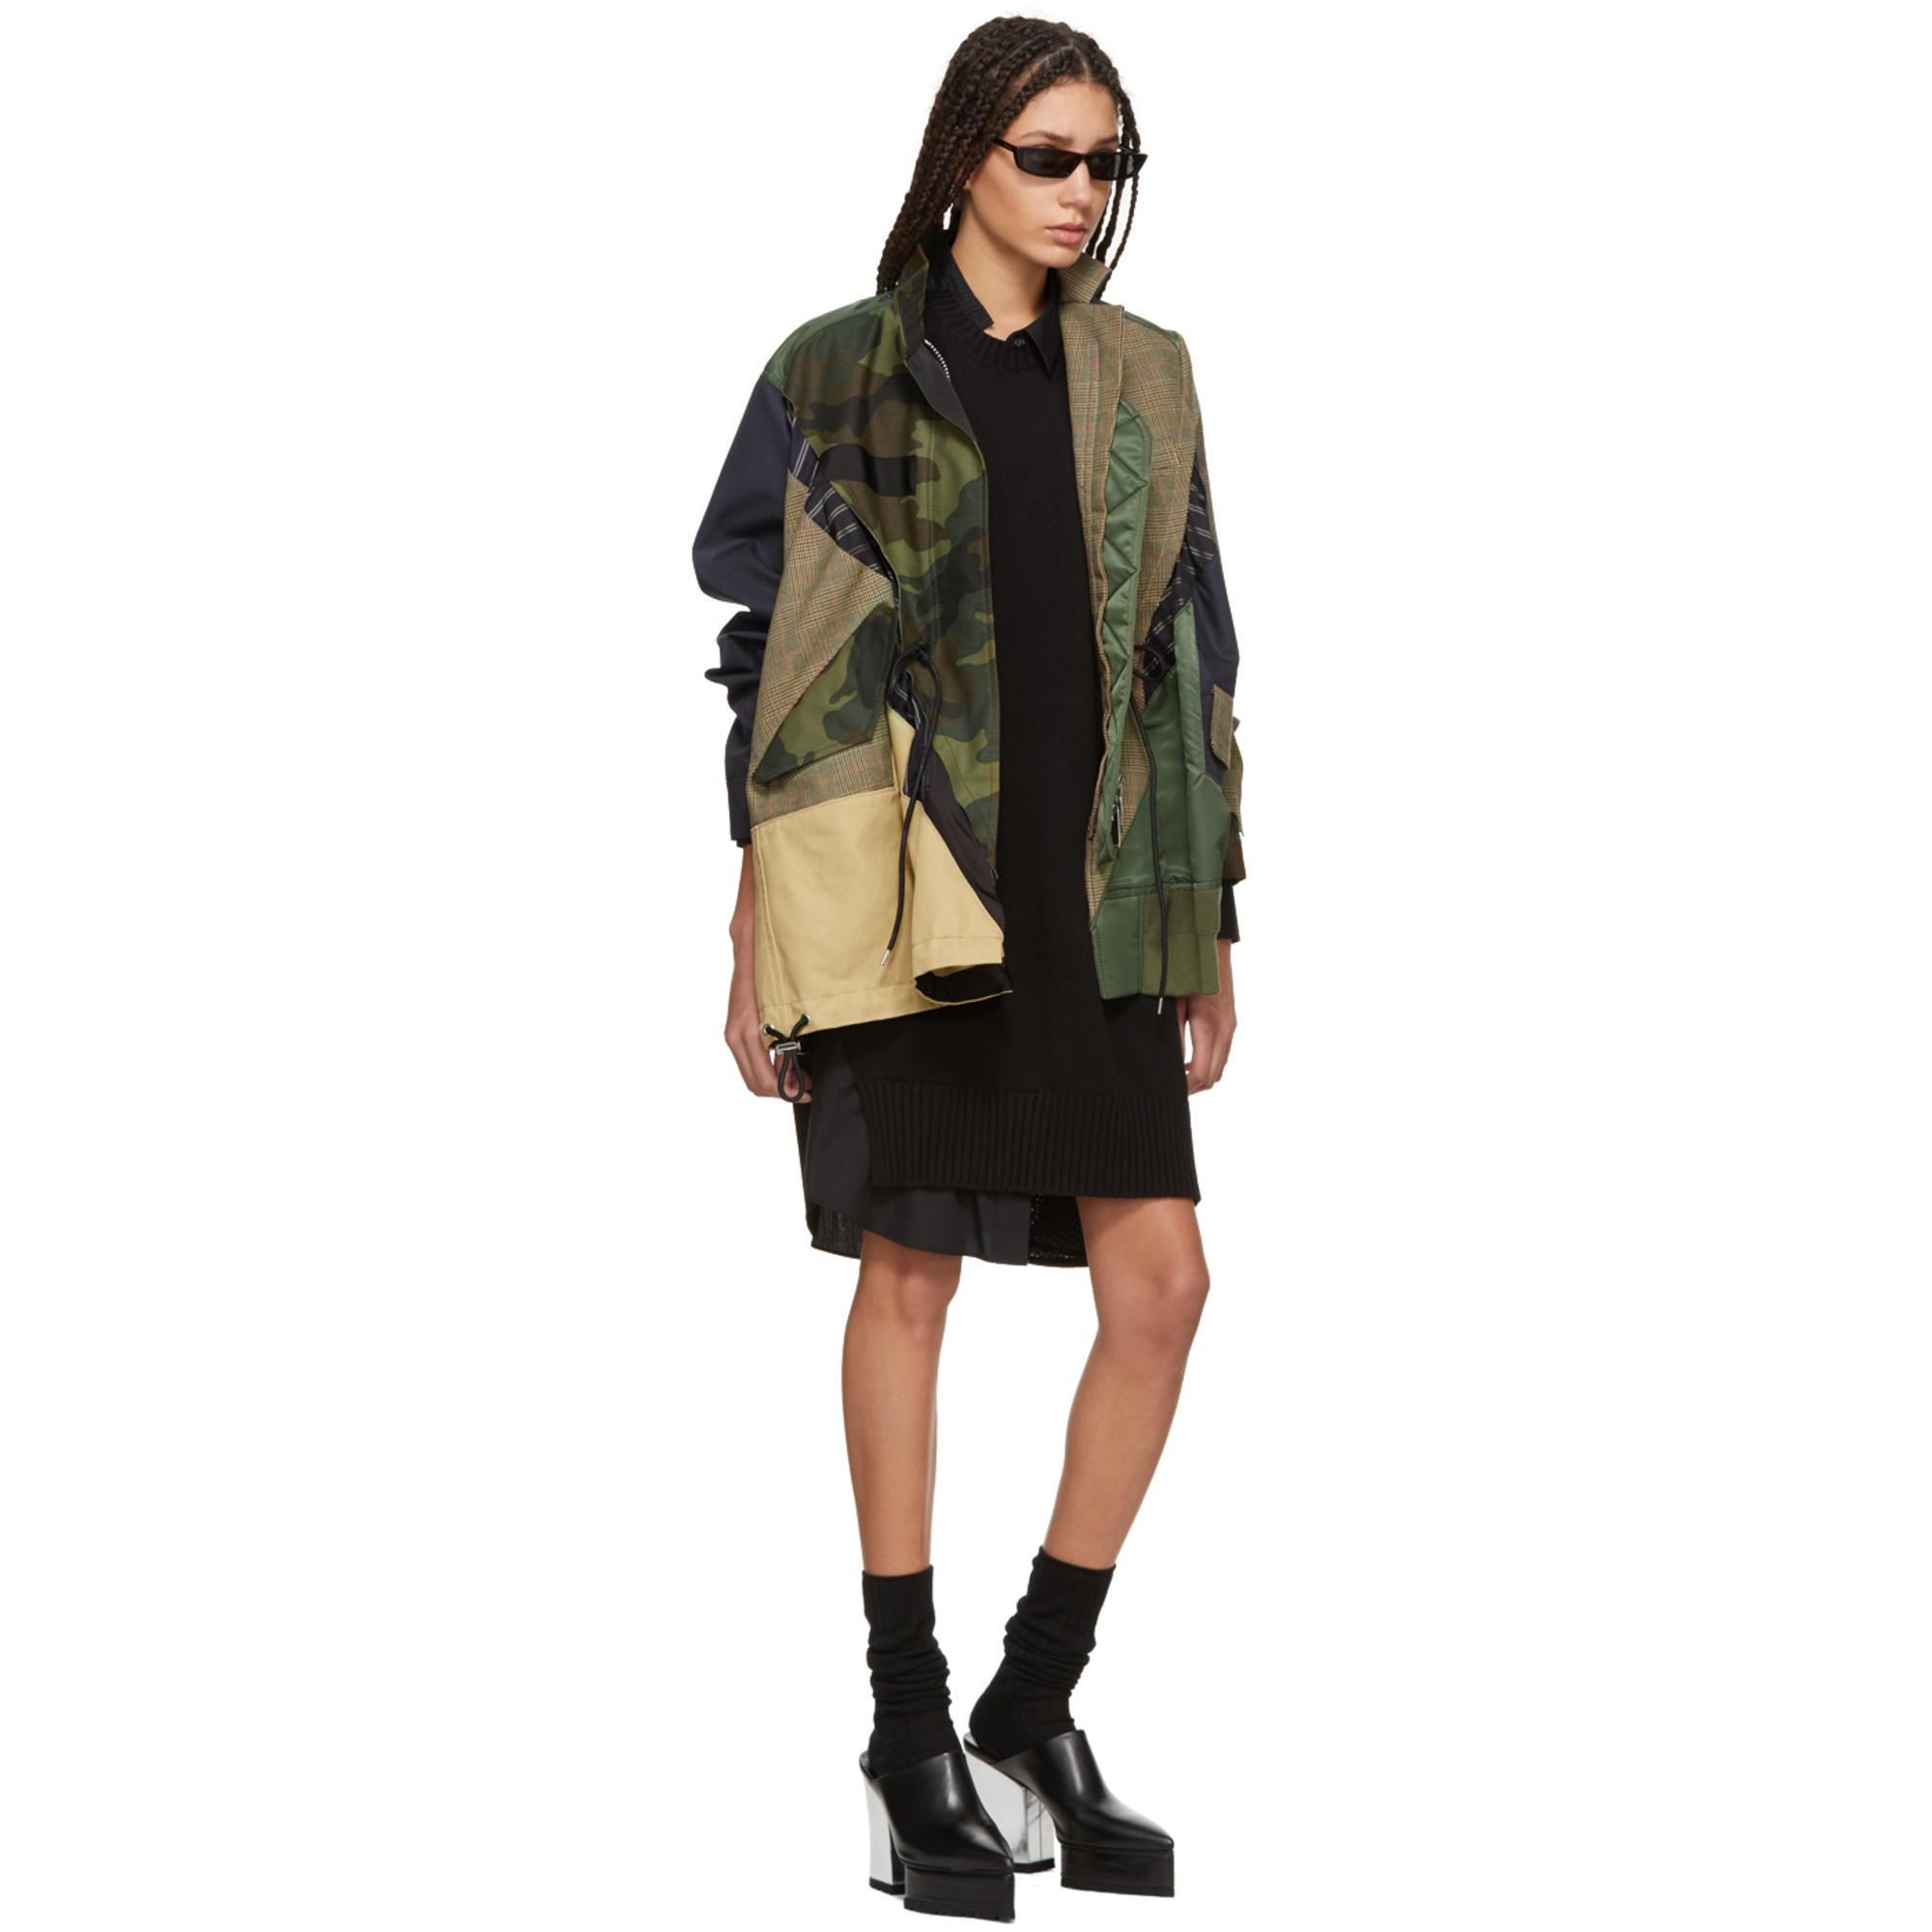 f13a4eb7919b6 Sacai Beige And Khaki Patchwork Glencheck And Camo Jacket in Natural ...